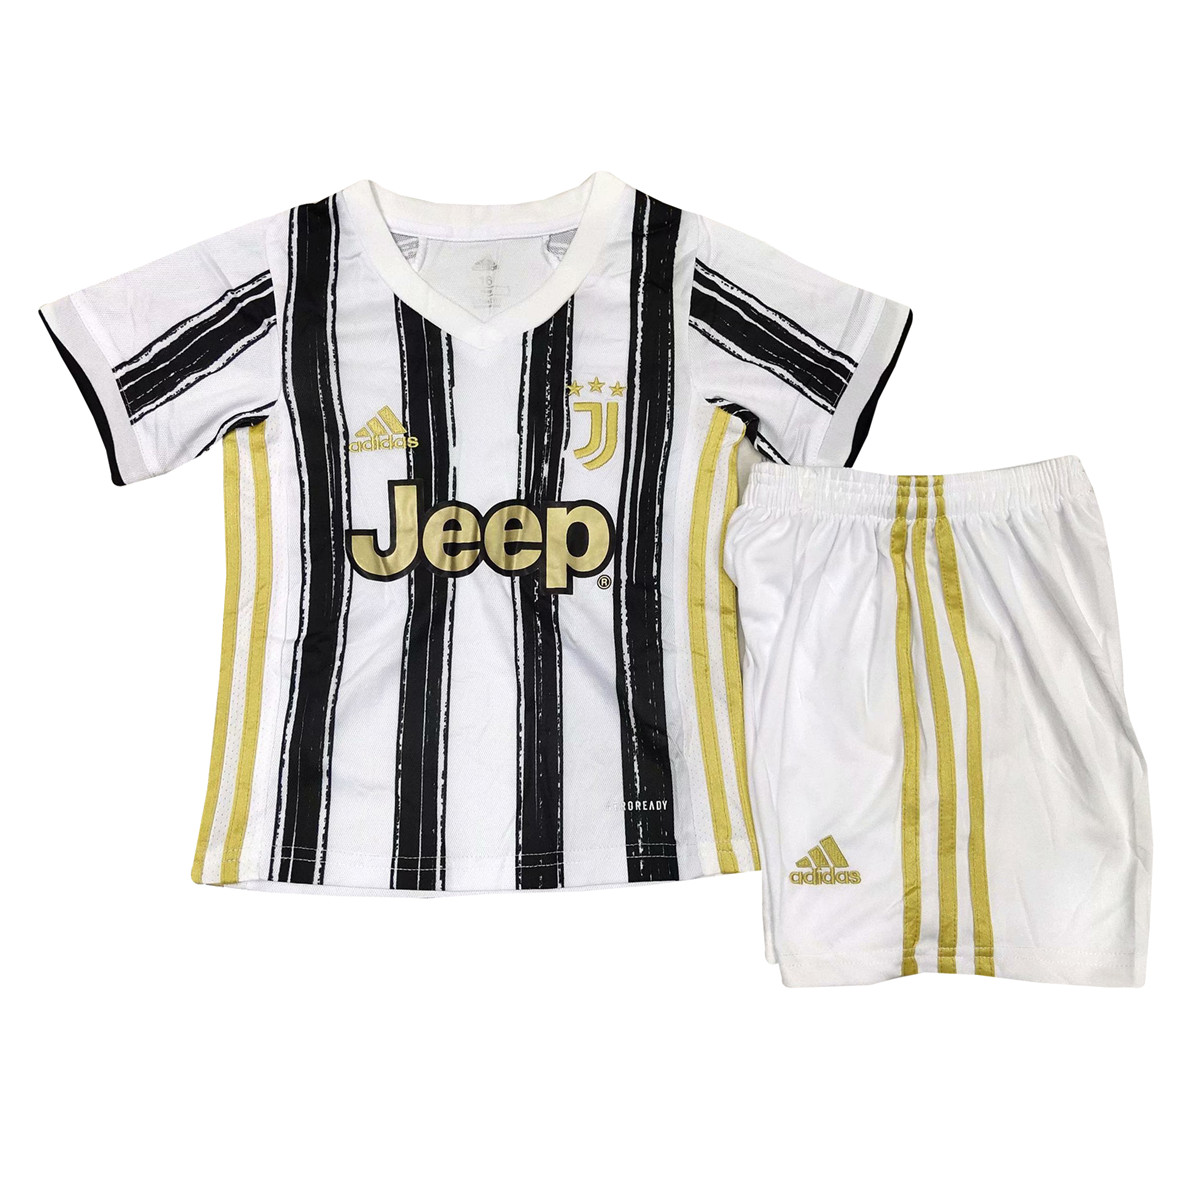 Kids 2020-2021 Juventus Home Children Soccer Jersey With Shorts ...